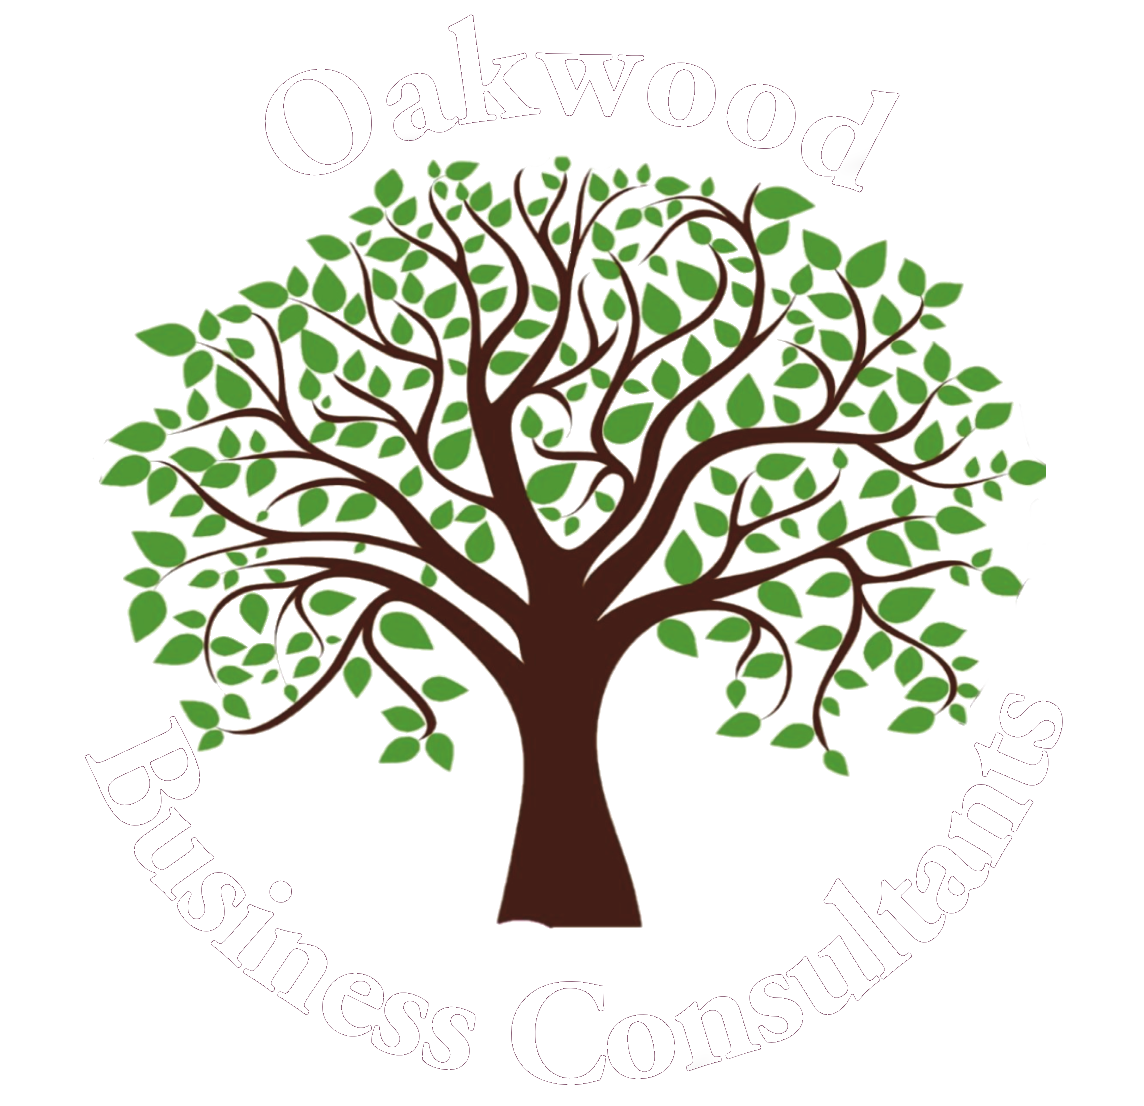 Oakwood Business Consultants